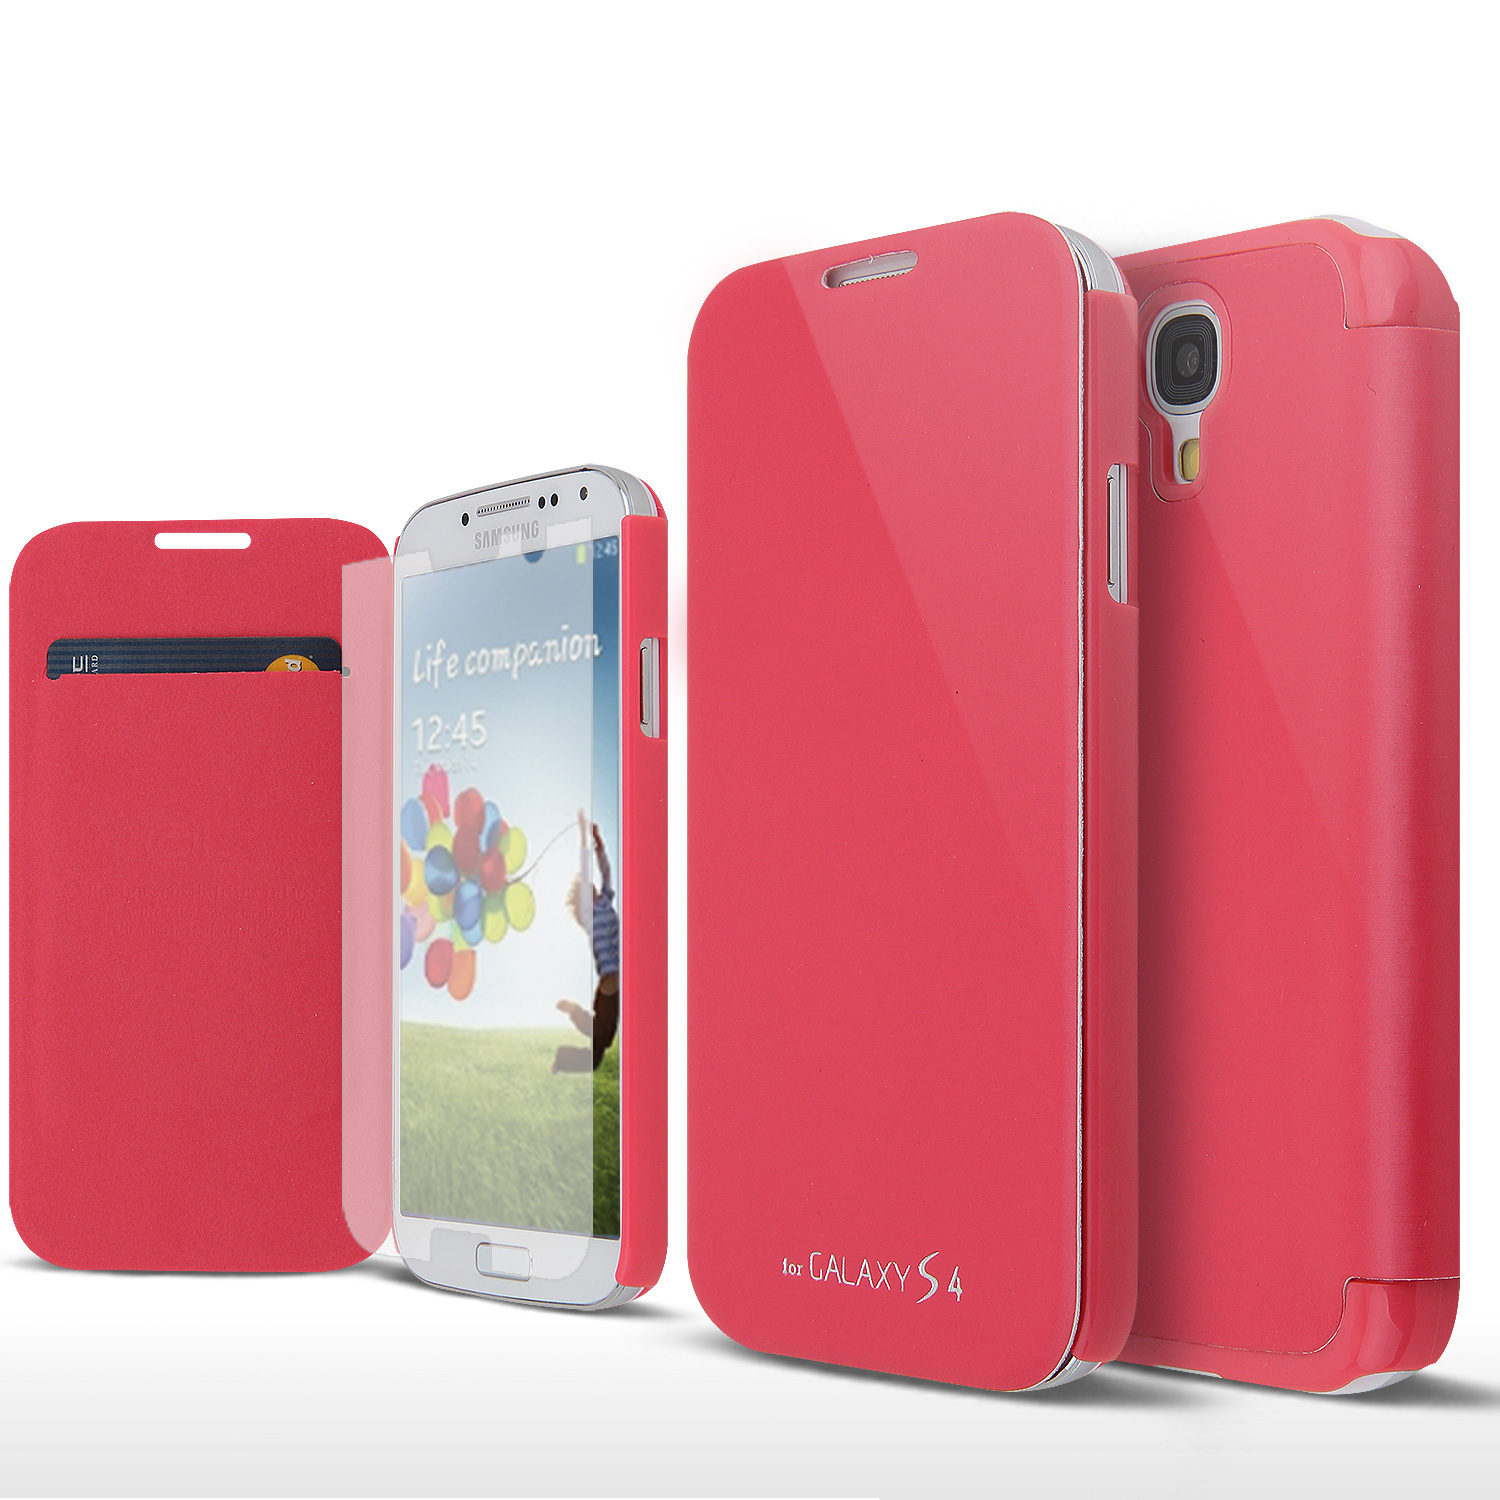 Pink Exclusive AccessoryGeeks Flip Cover Case w/ ID Slot, Satin Cover & Free Screen Protector for Samsung Galaxy S4